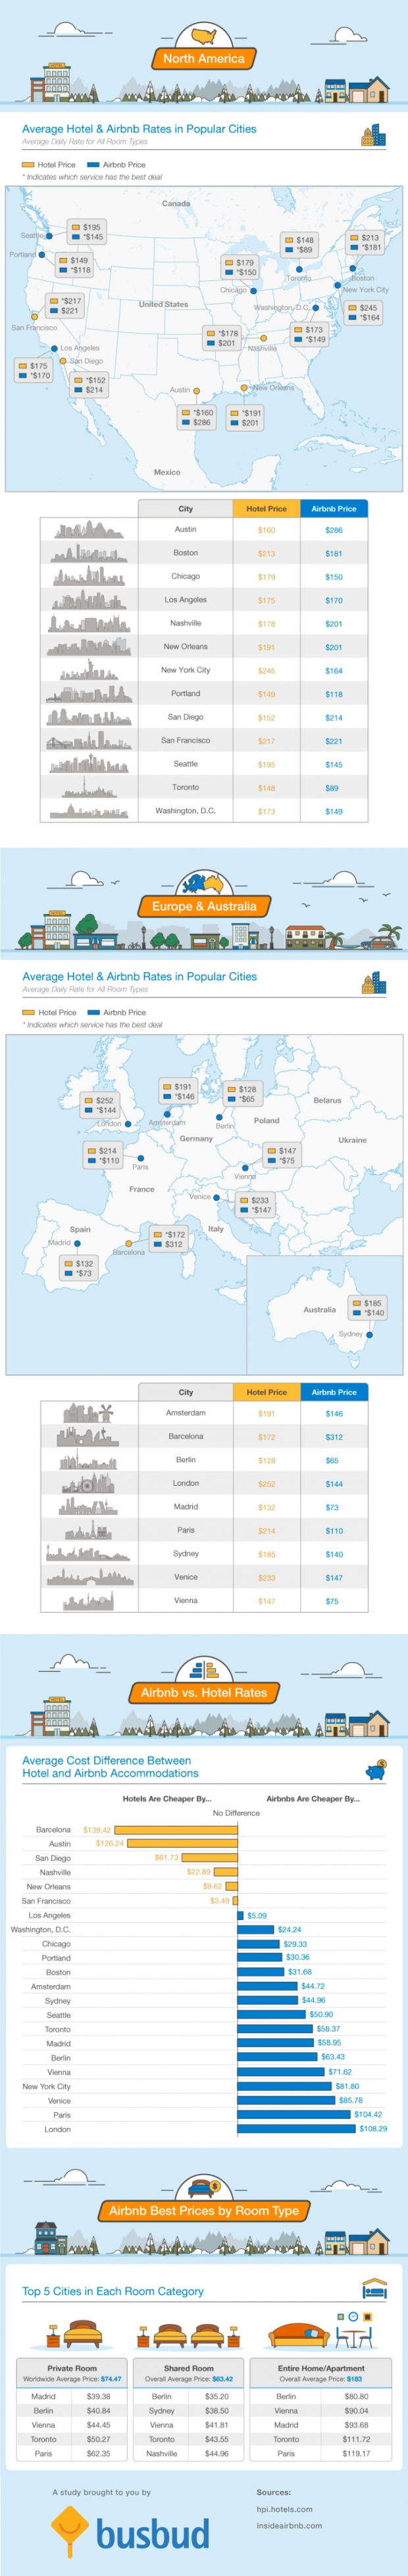 airbnb-vs-hotels-full-infographic